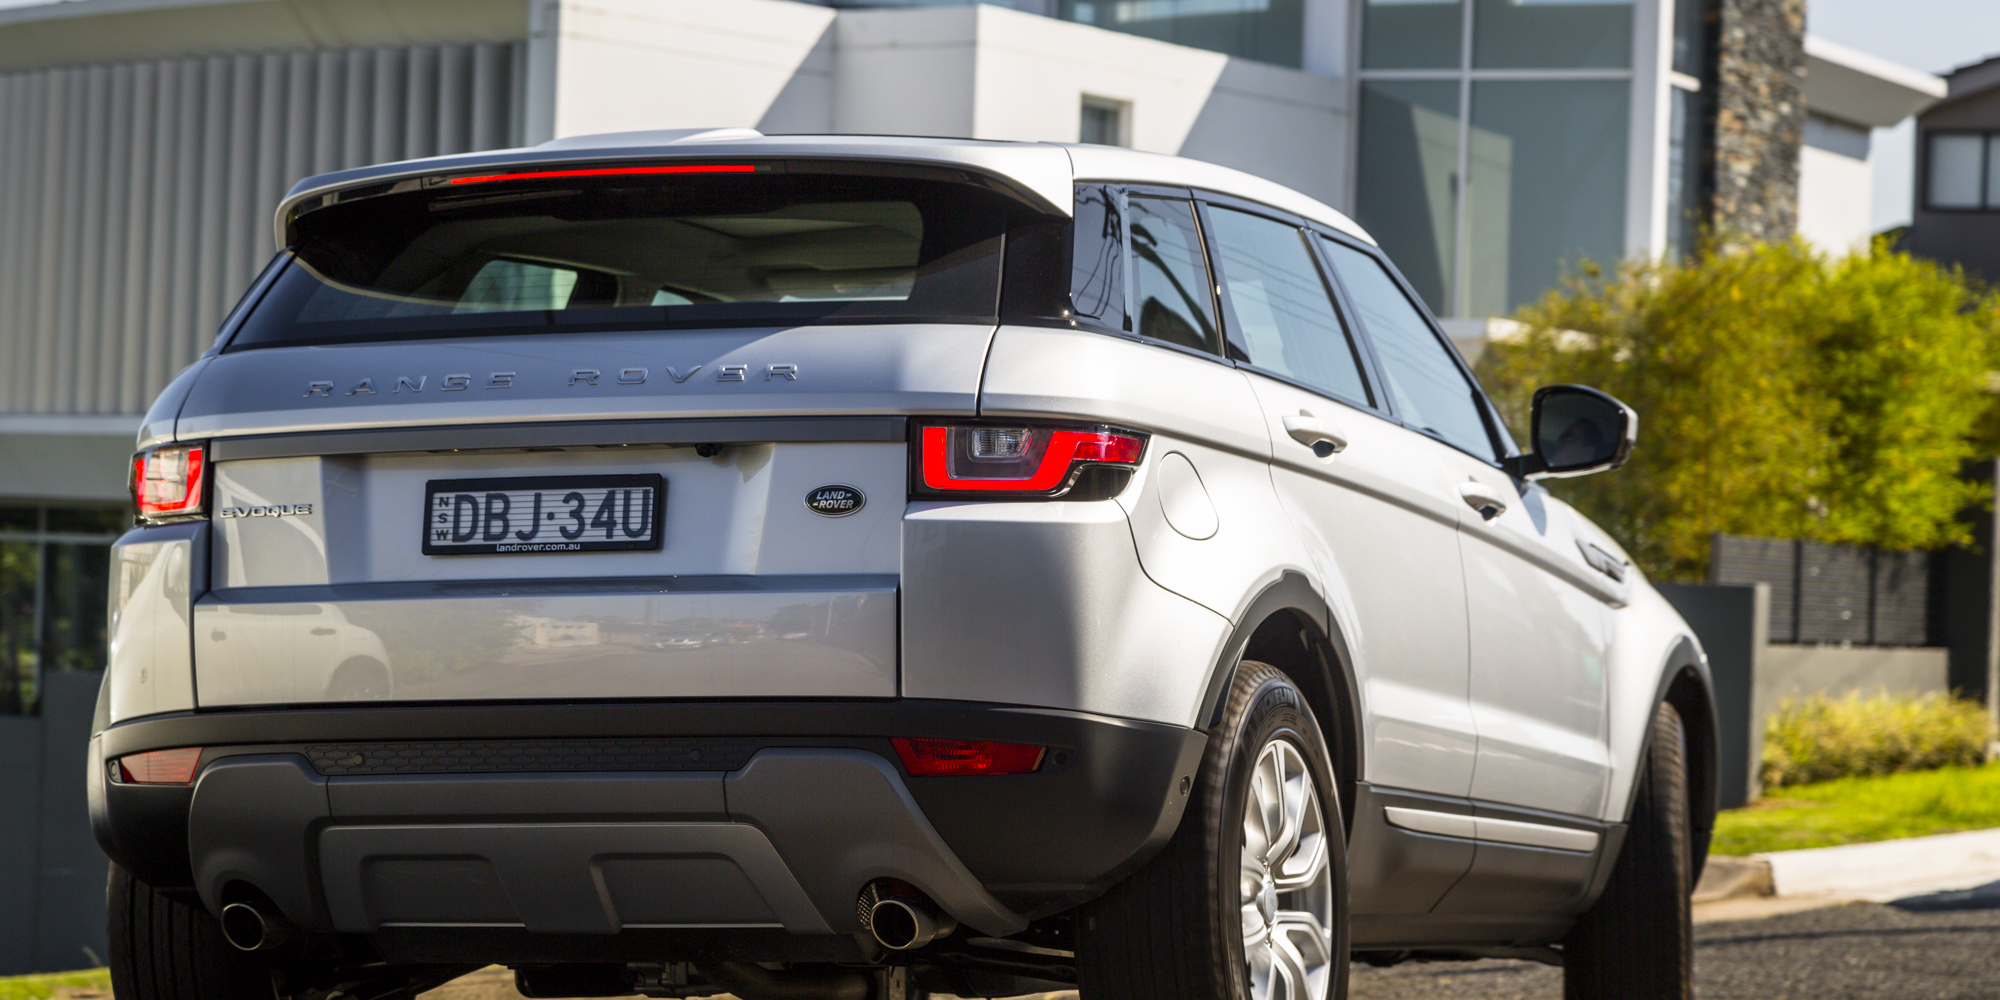 Luxury 2016 Range Rover Evoque Review  CarAdvice